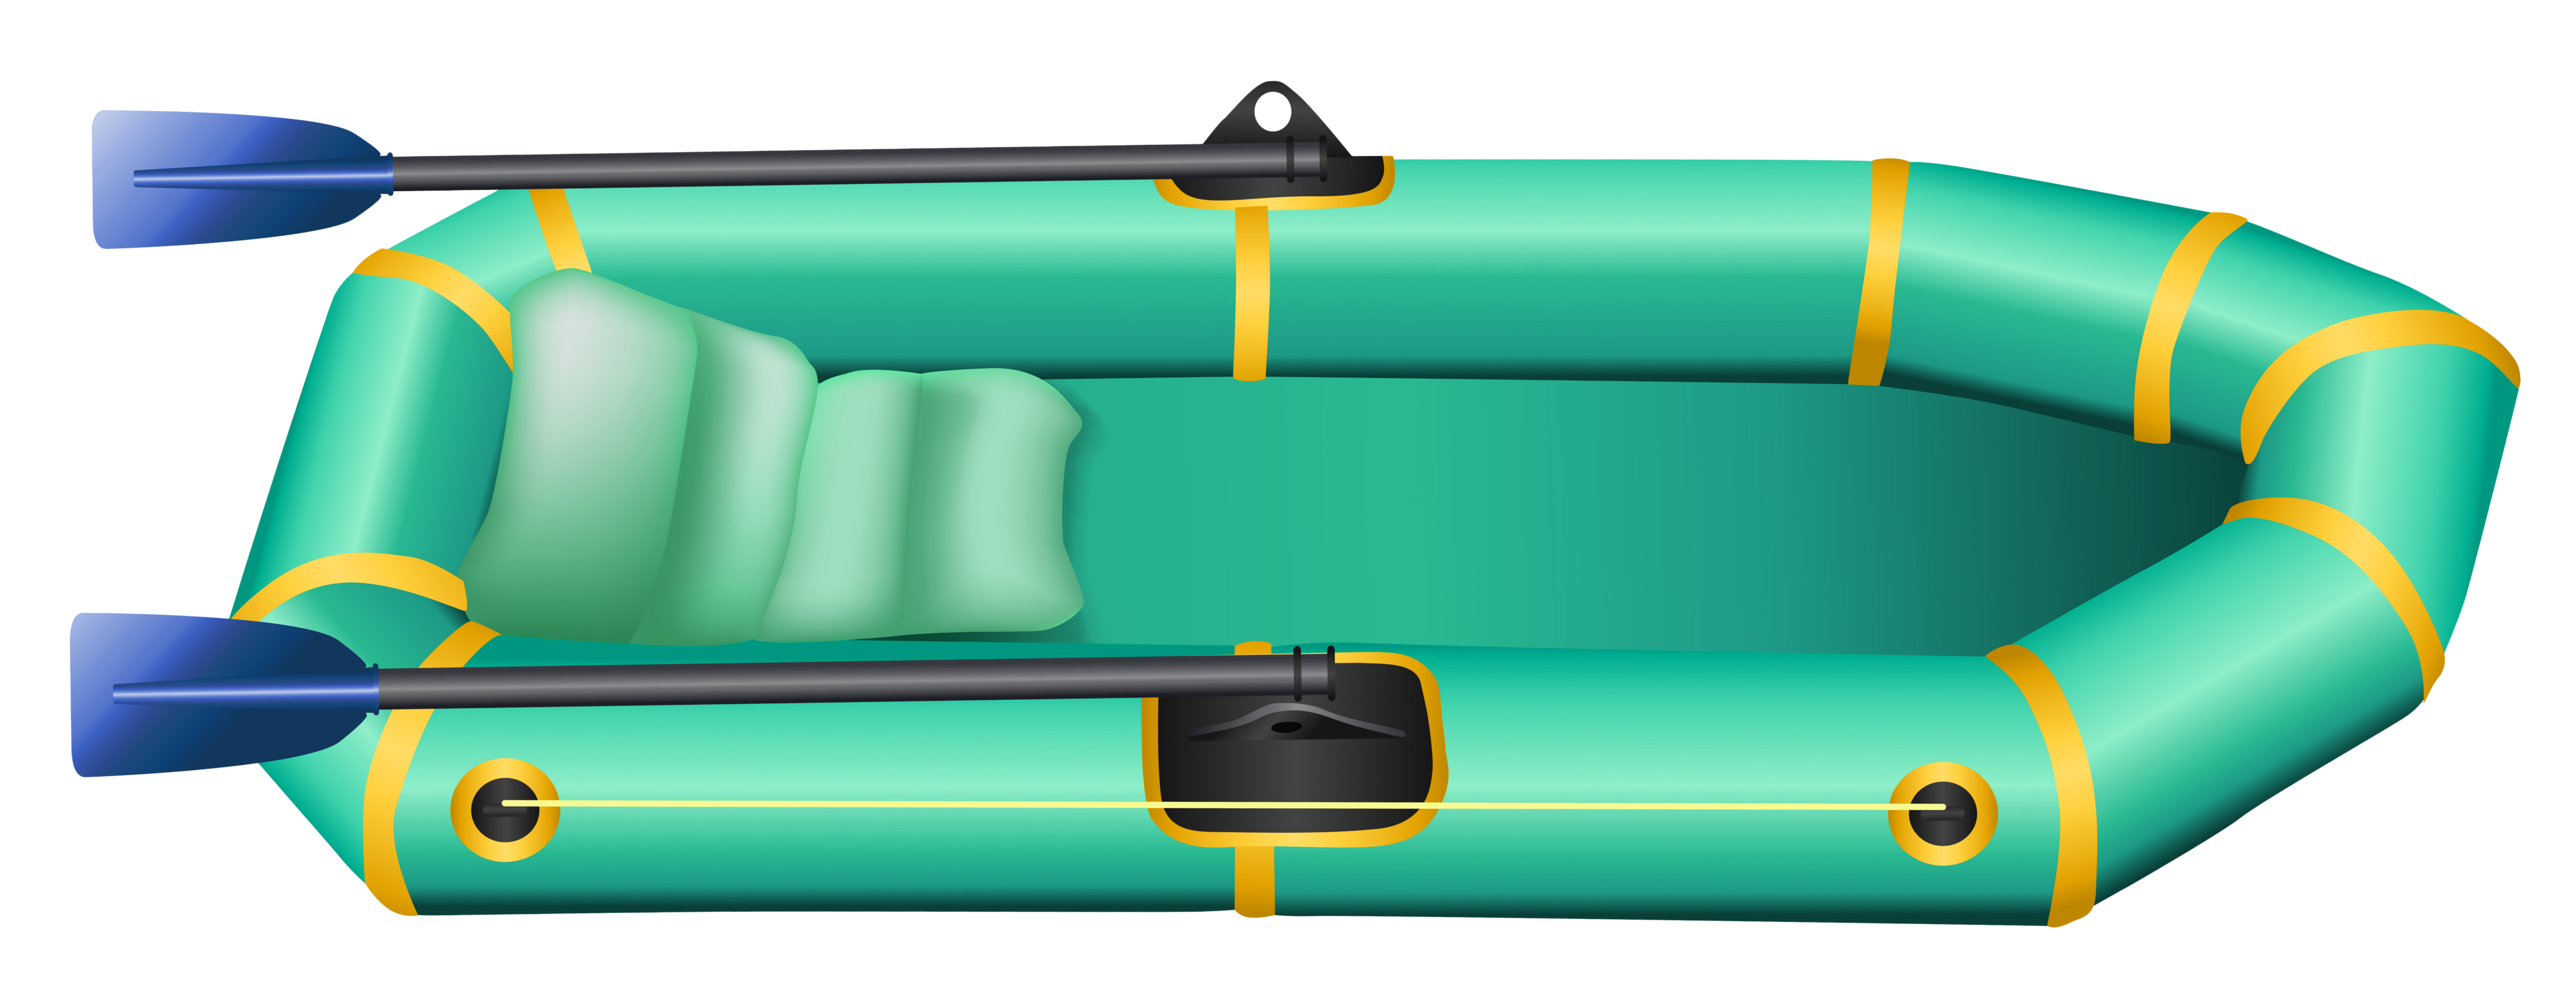 Boat clipart png. Rubber gallery yopriceville high